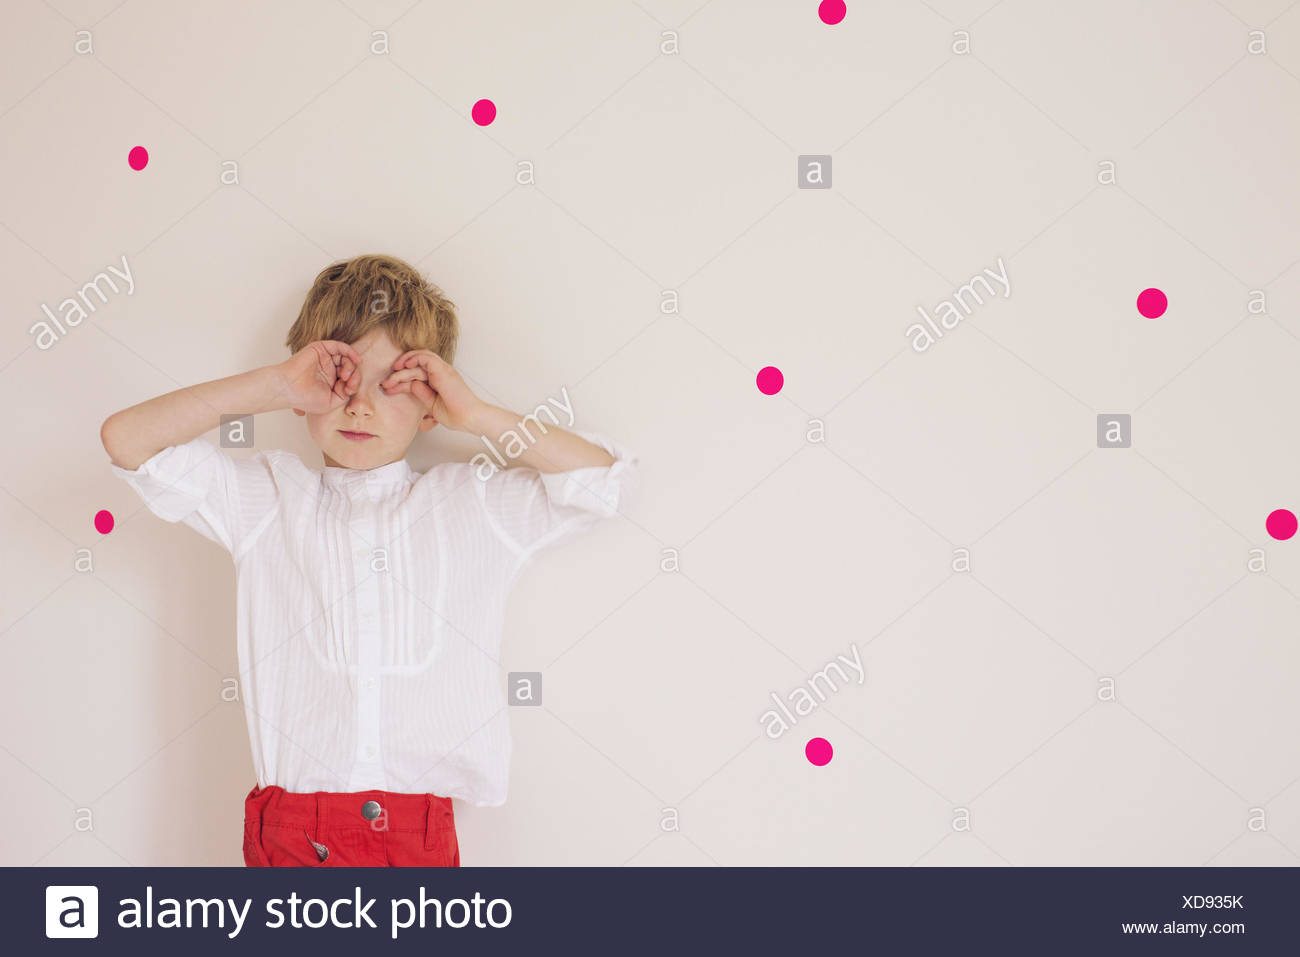 Little boy covering eyes with his hands, portrait - Stock Image